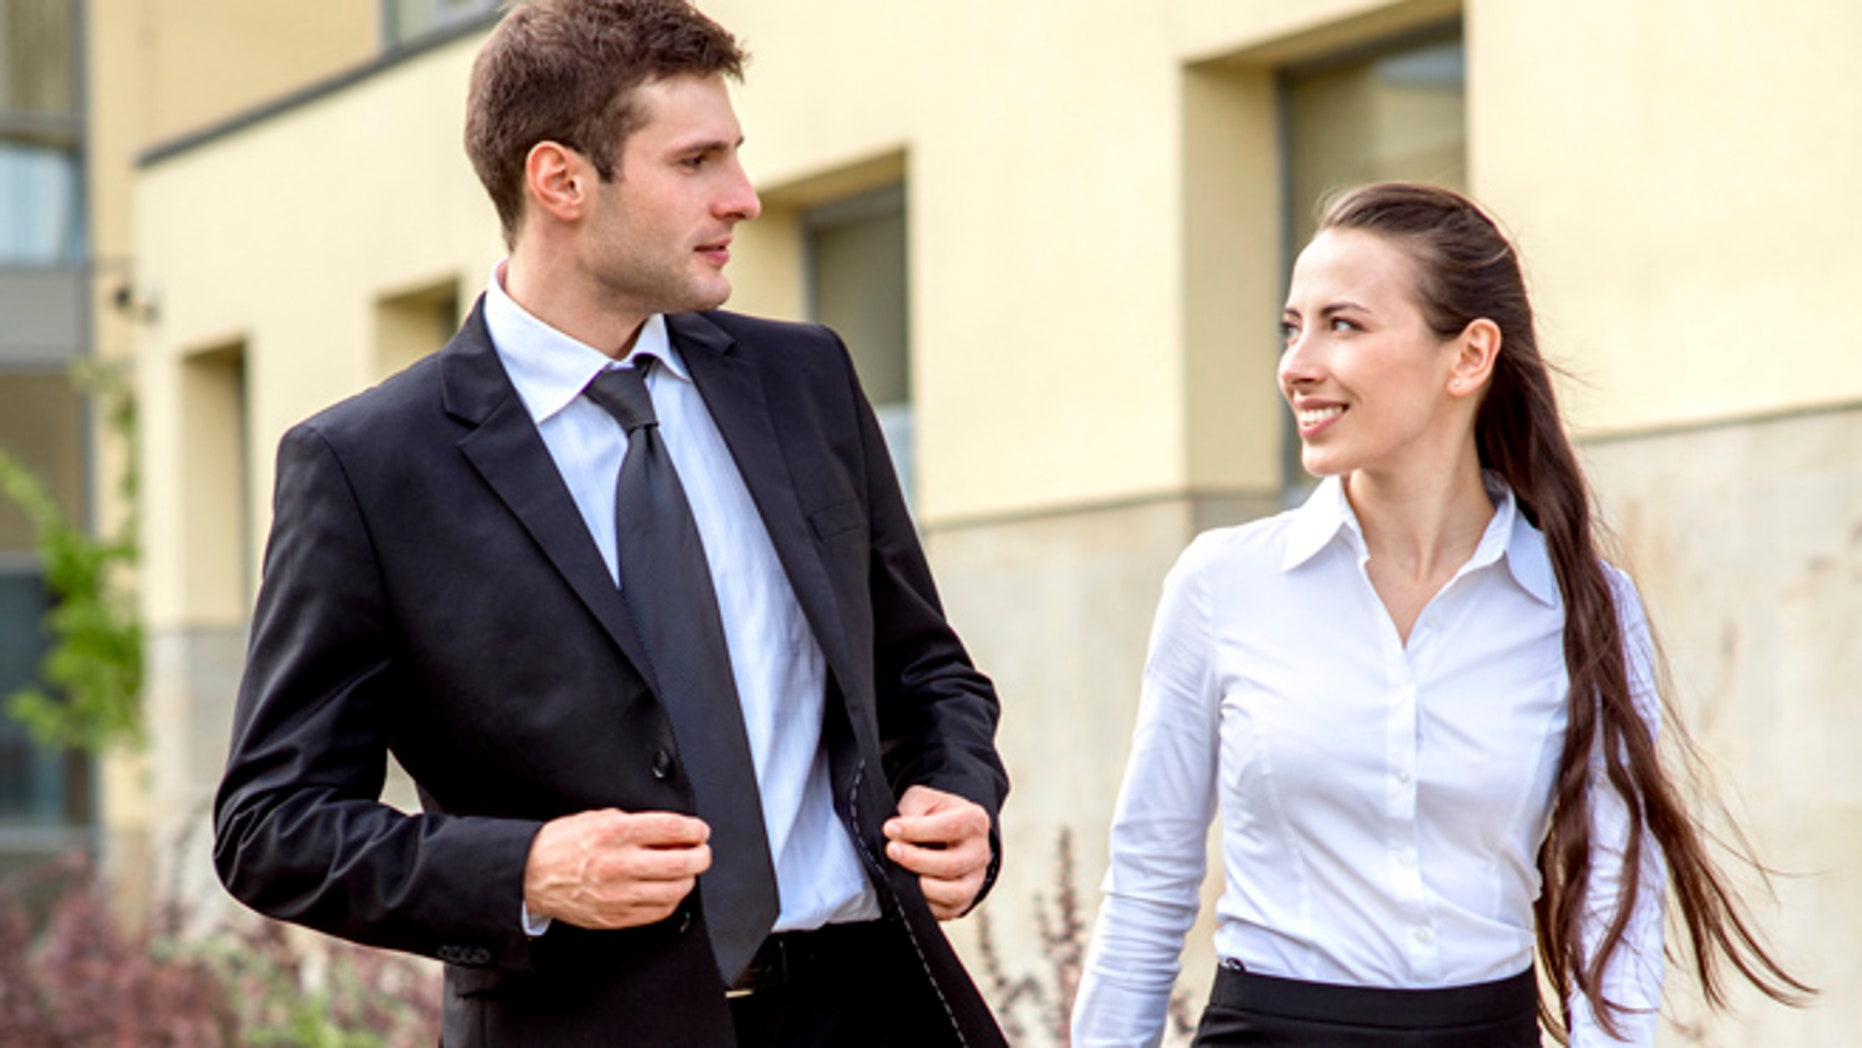 Young business couple walking outdoor near the office building